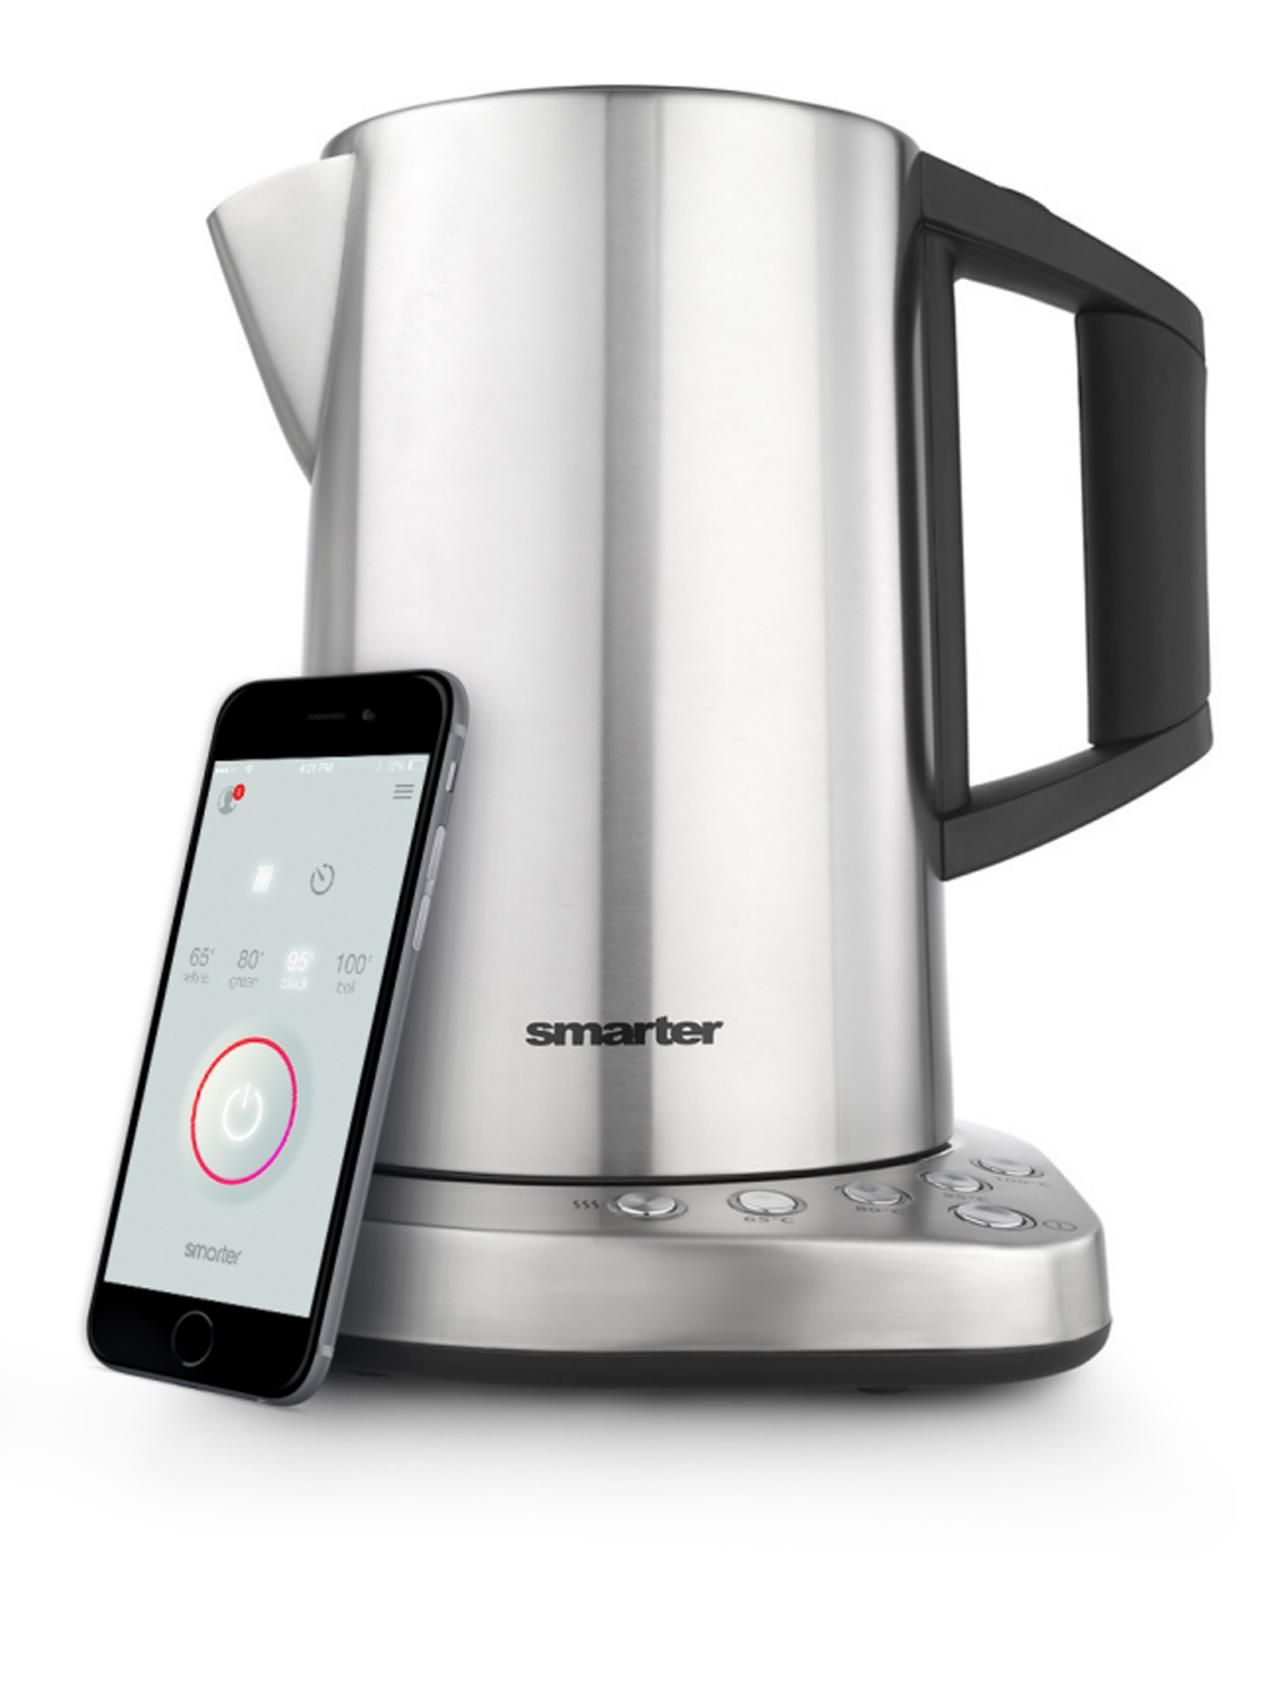 If you boil a lot of tea, this Wi-Fi-enabled kettle claims to be able to save you up to two days a year in boiling time by allowing you to pre-boil your kettle via app. Pick your temperature, then heat things up your tea time from wherever you are.